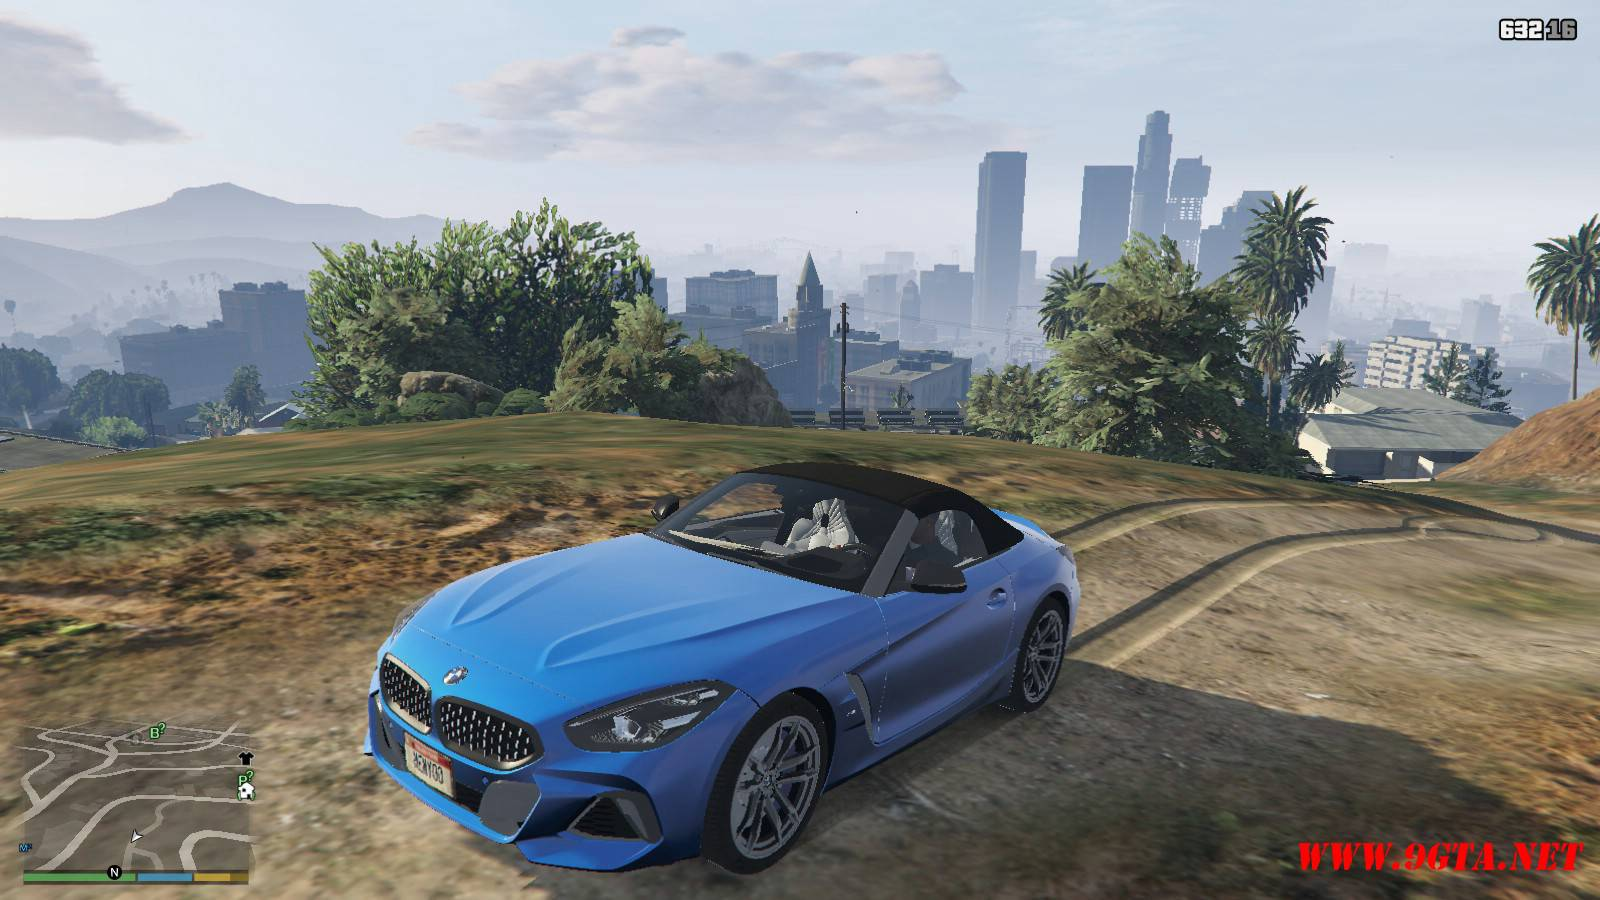 2019 BMW Z4 M40i v2.0 Mod For GTA5 (17)